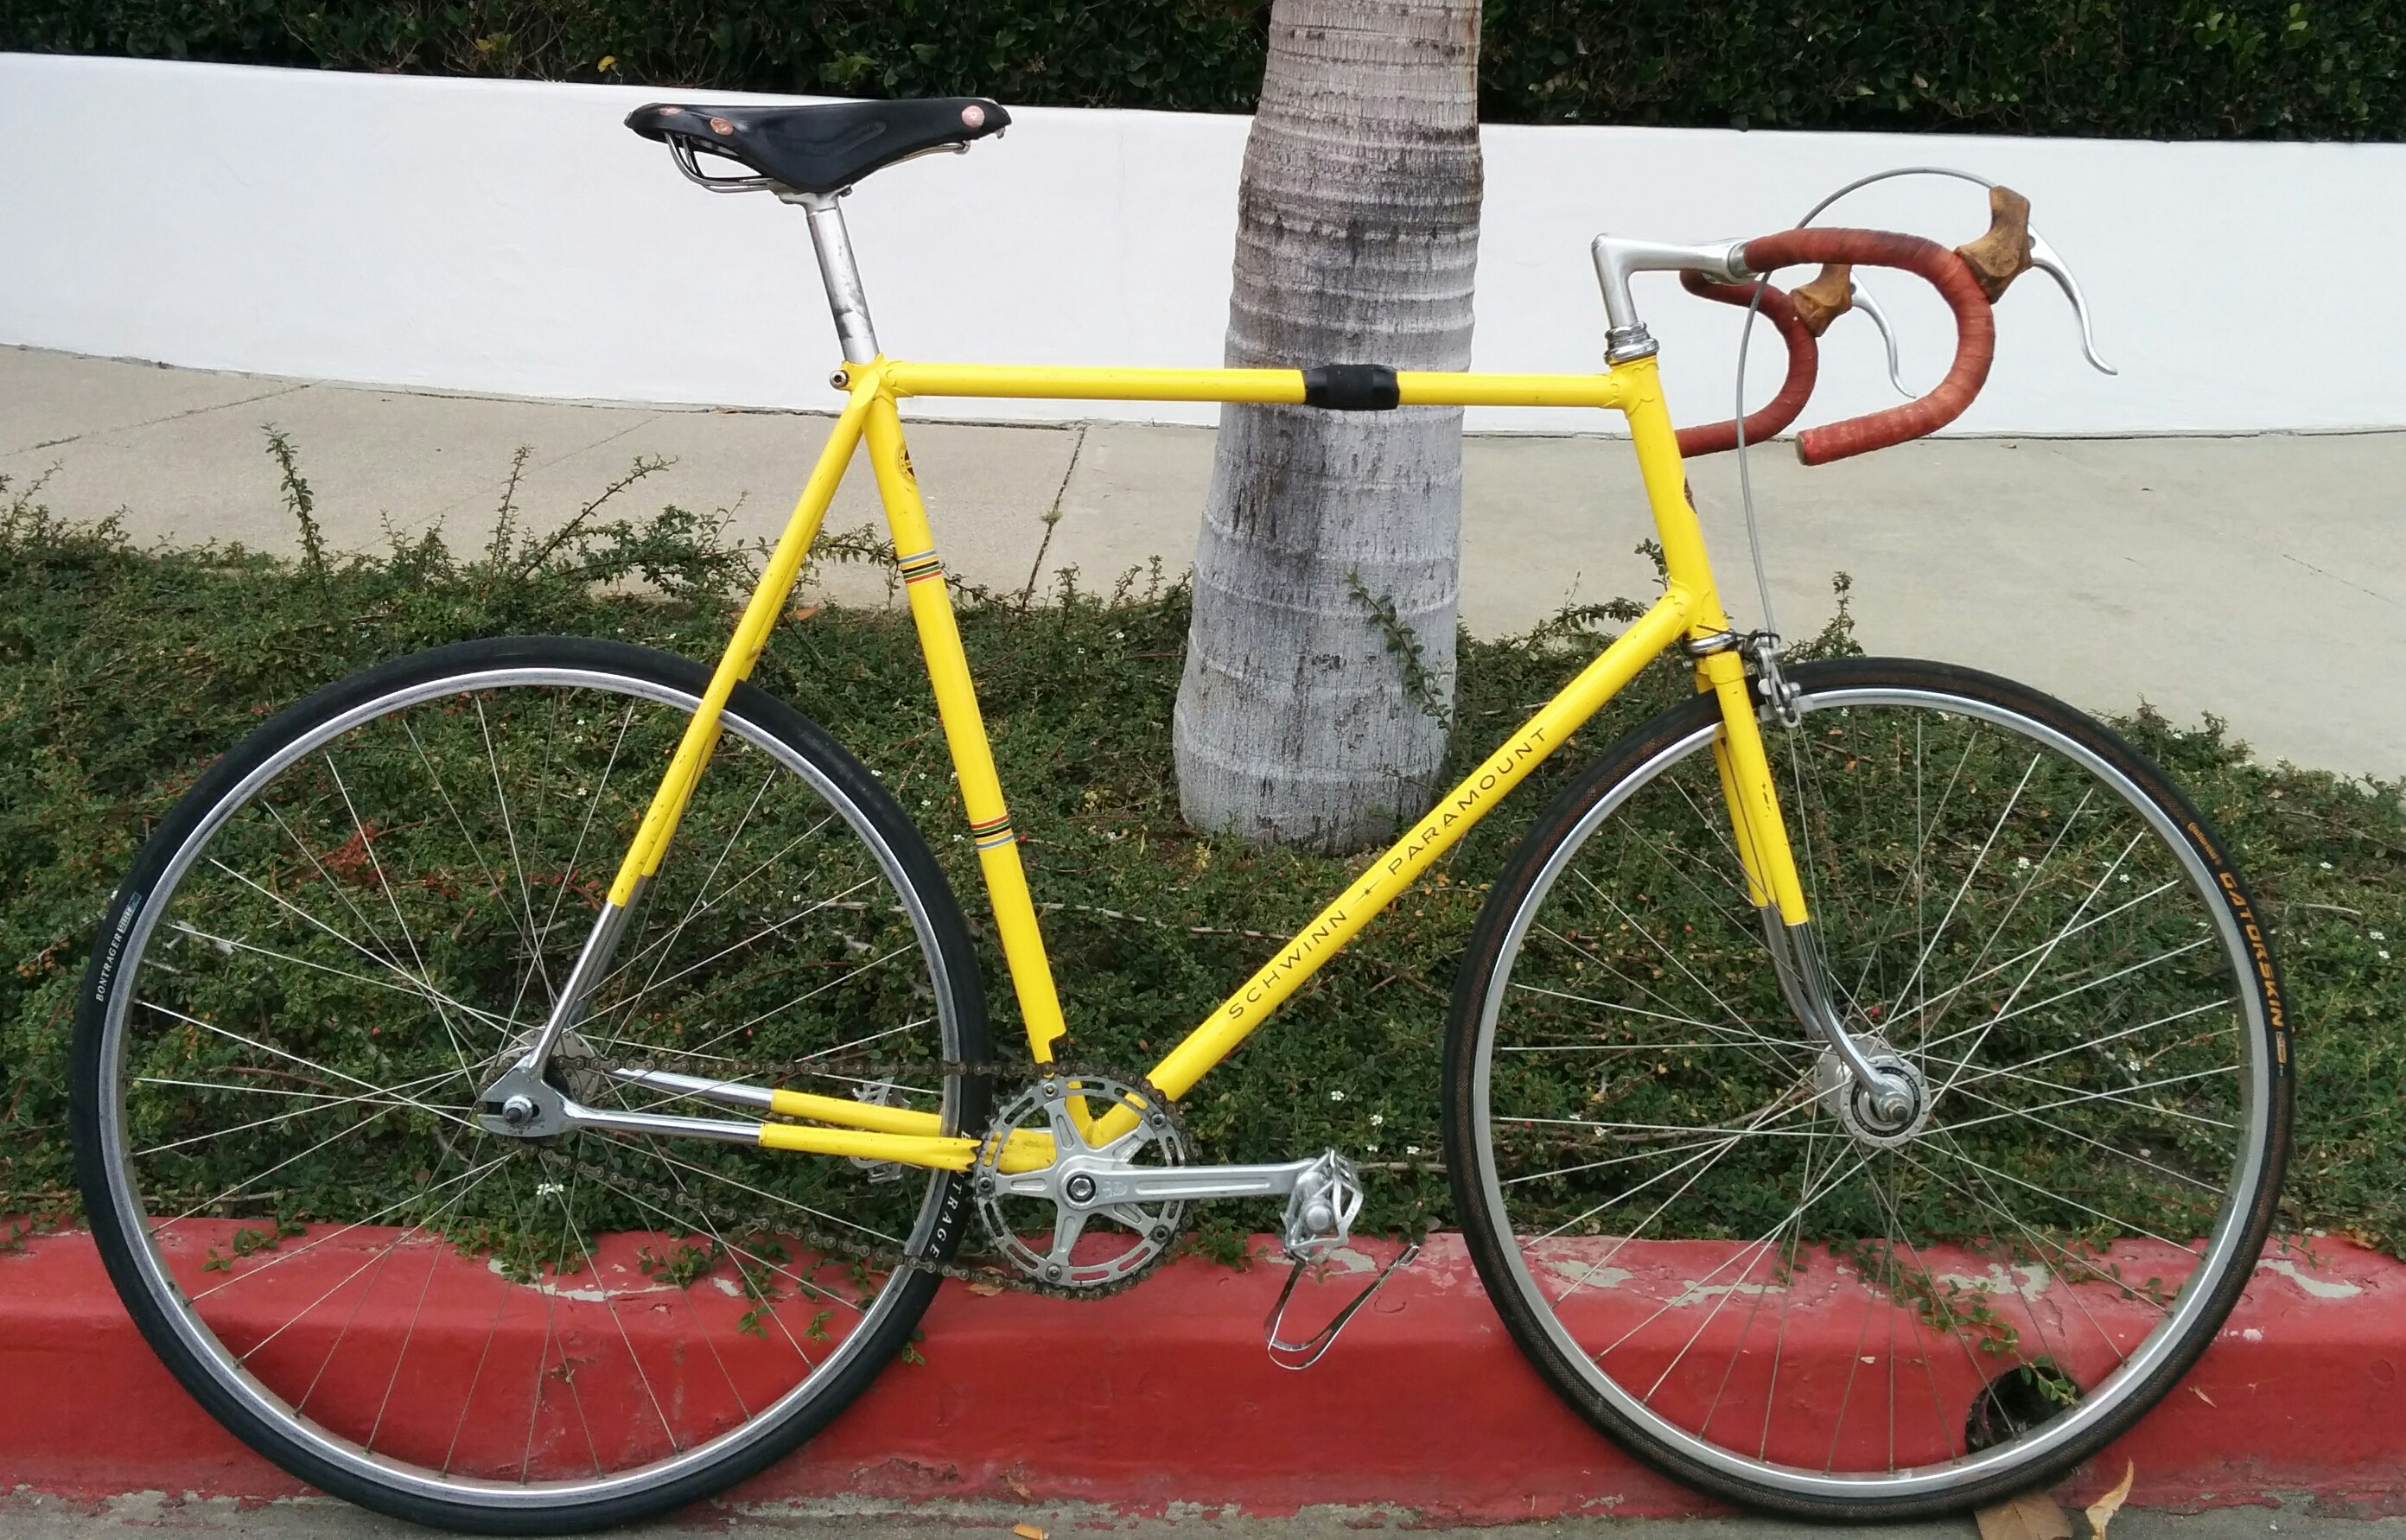 The New Classic Rigs and Rides Thread 1.1 - Page 67 - Bike Forums